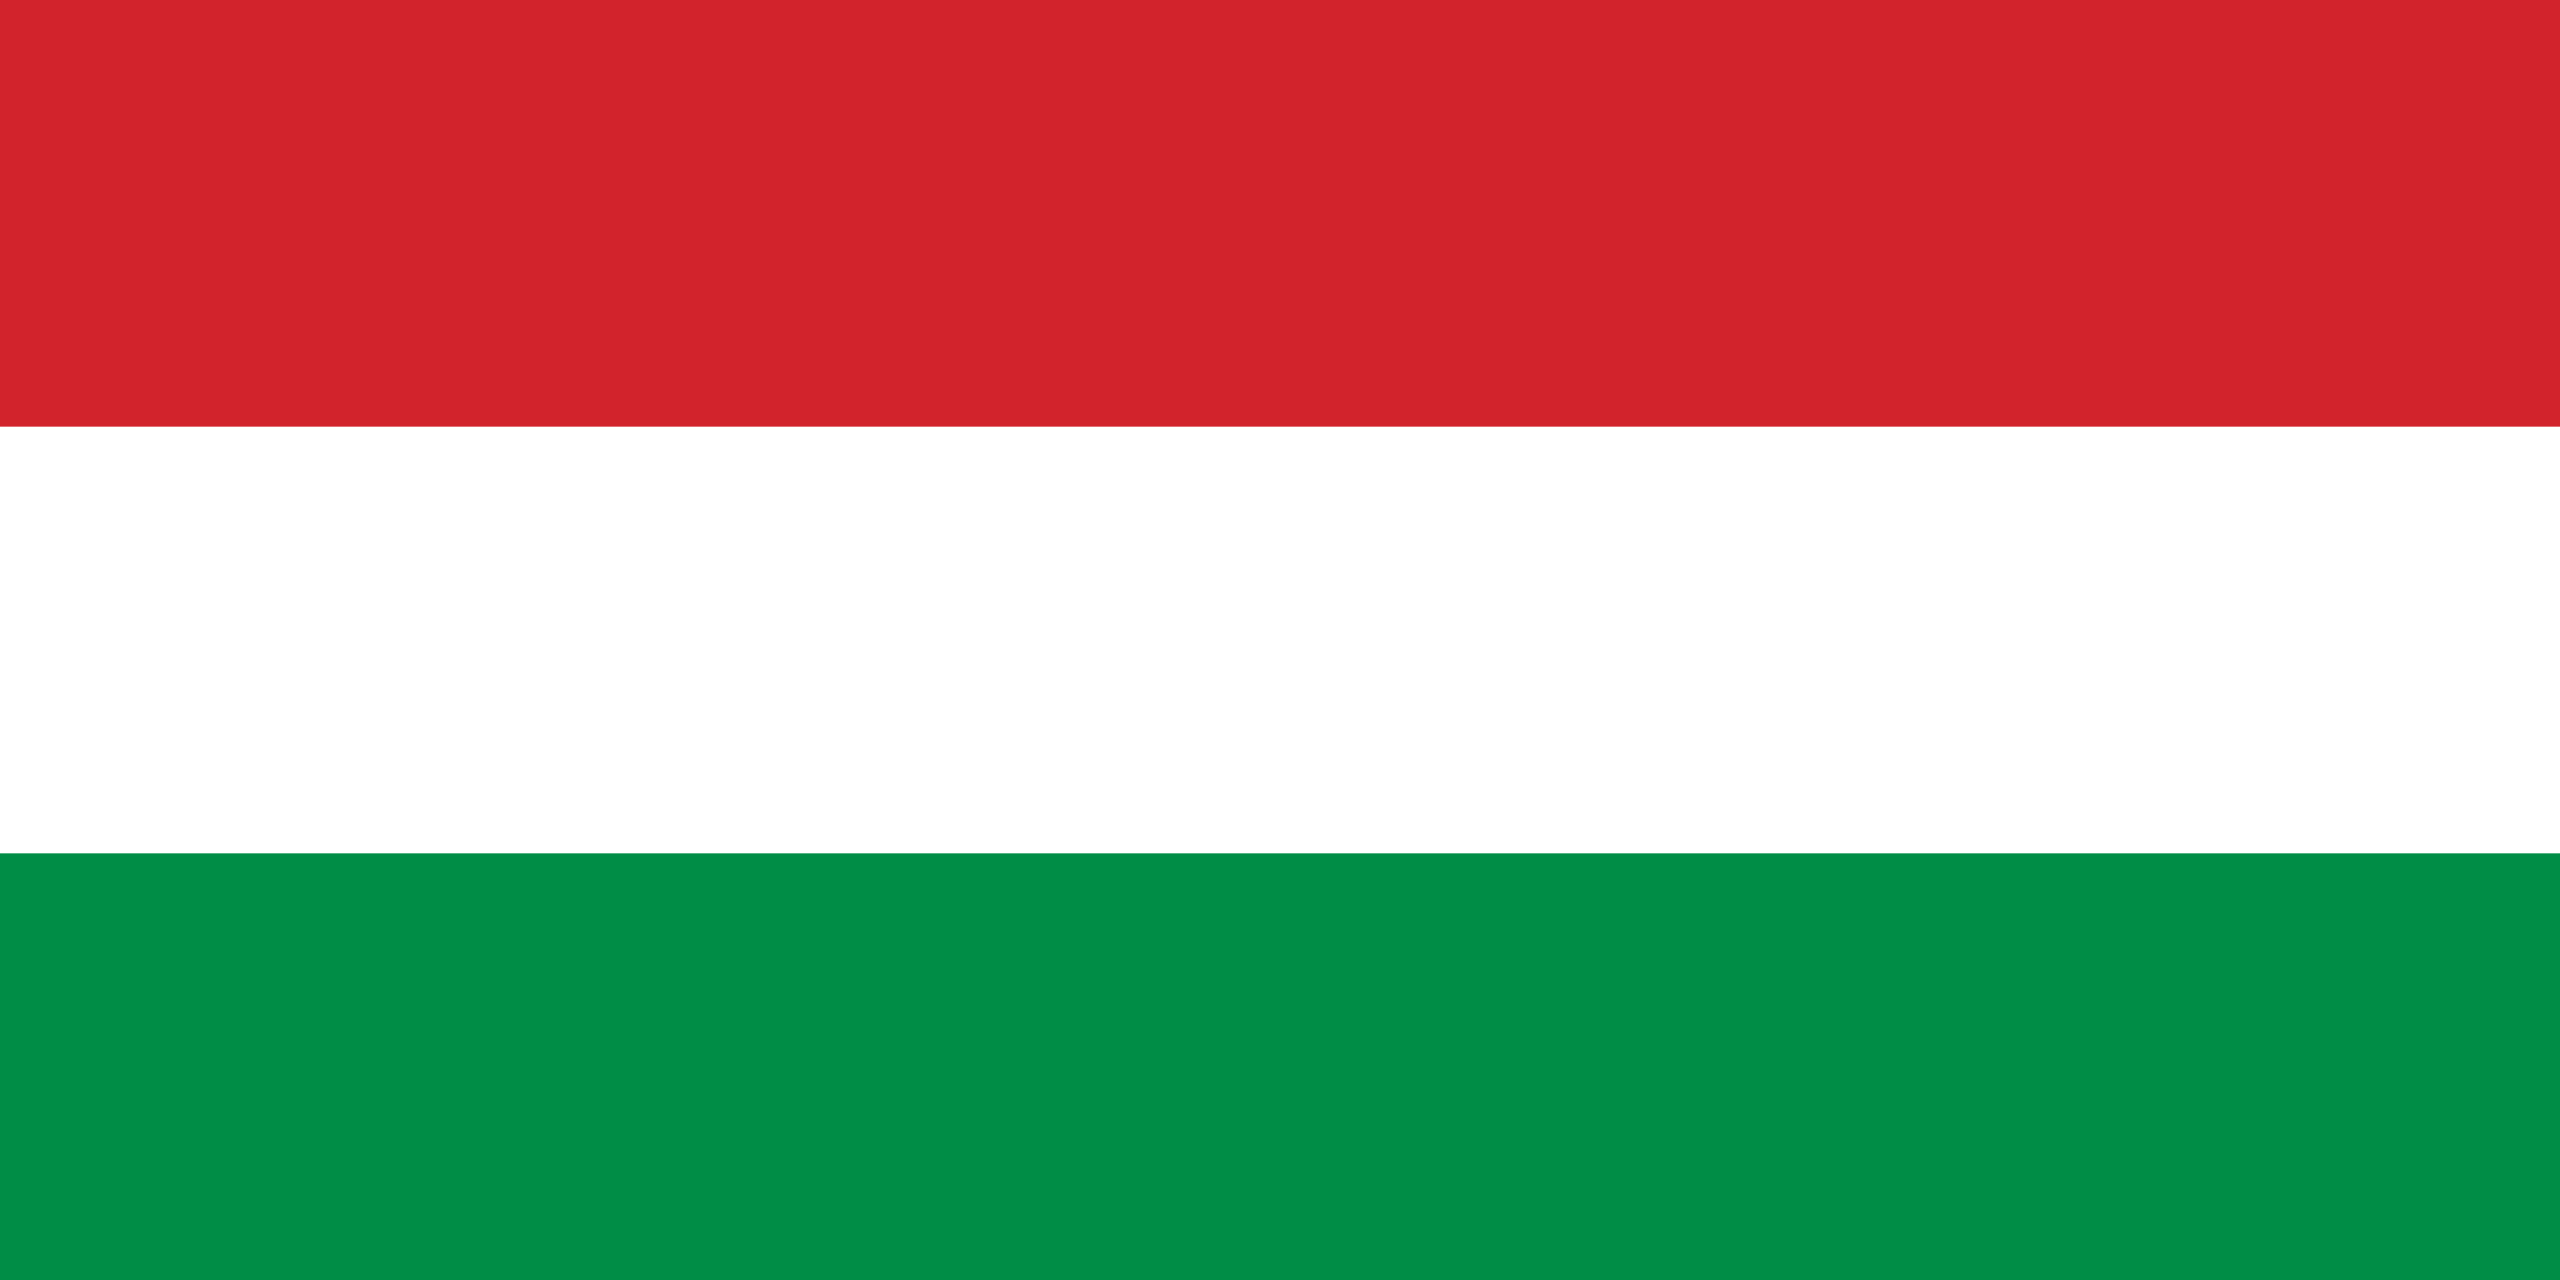 Hungary Kingdom Of The Netherlands Hungary Flag Netherlands Flag